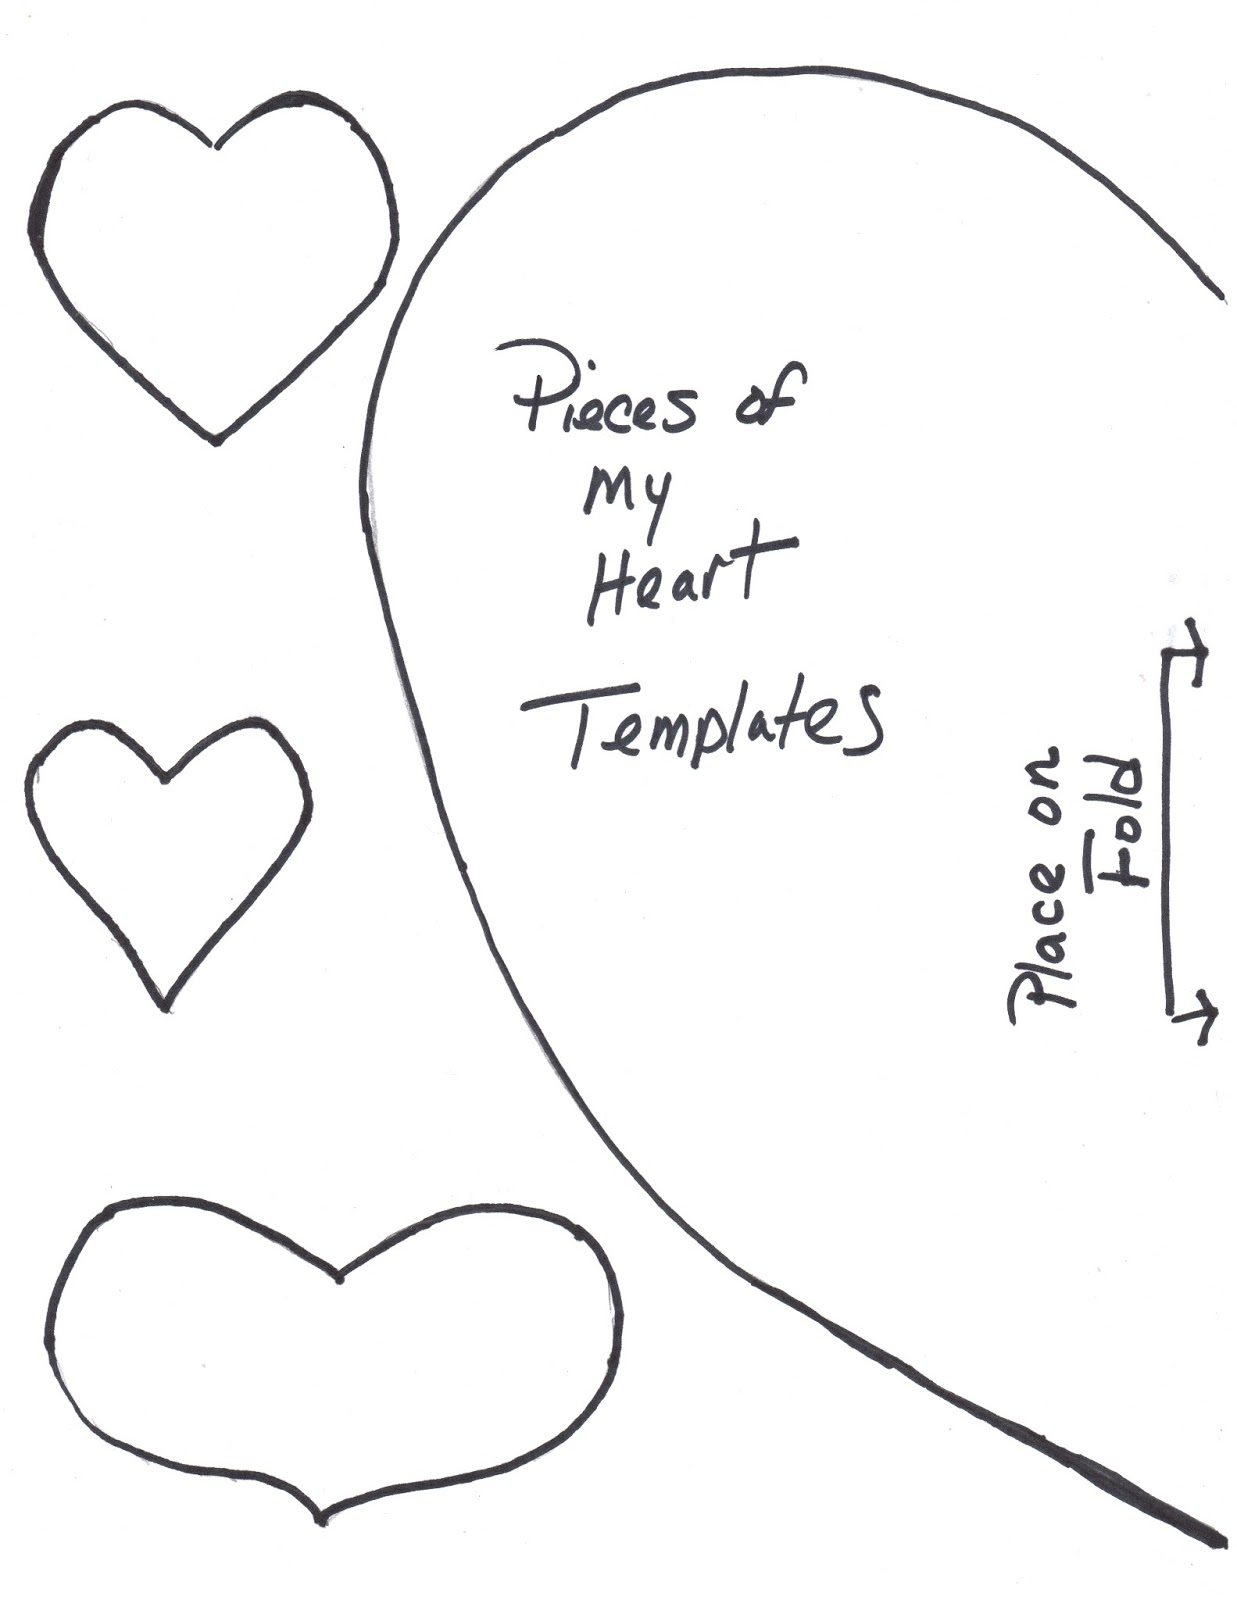 Damsel Quilts & Crafts: Pieces of My Heart Mug Rug